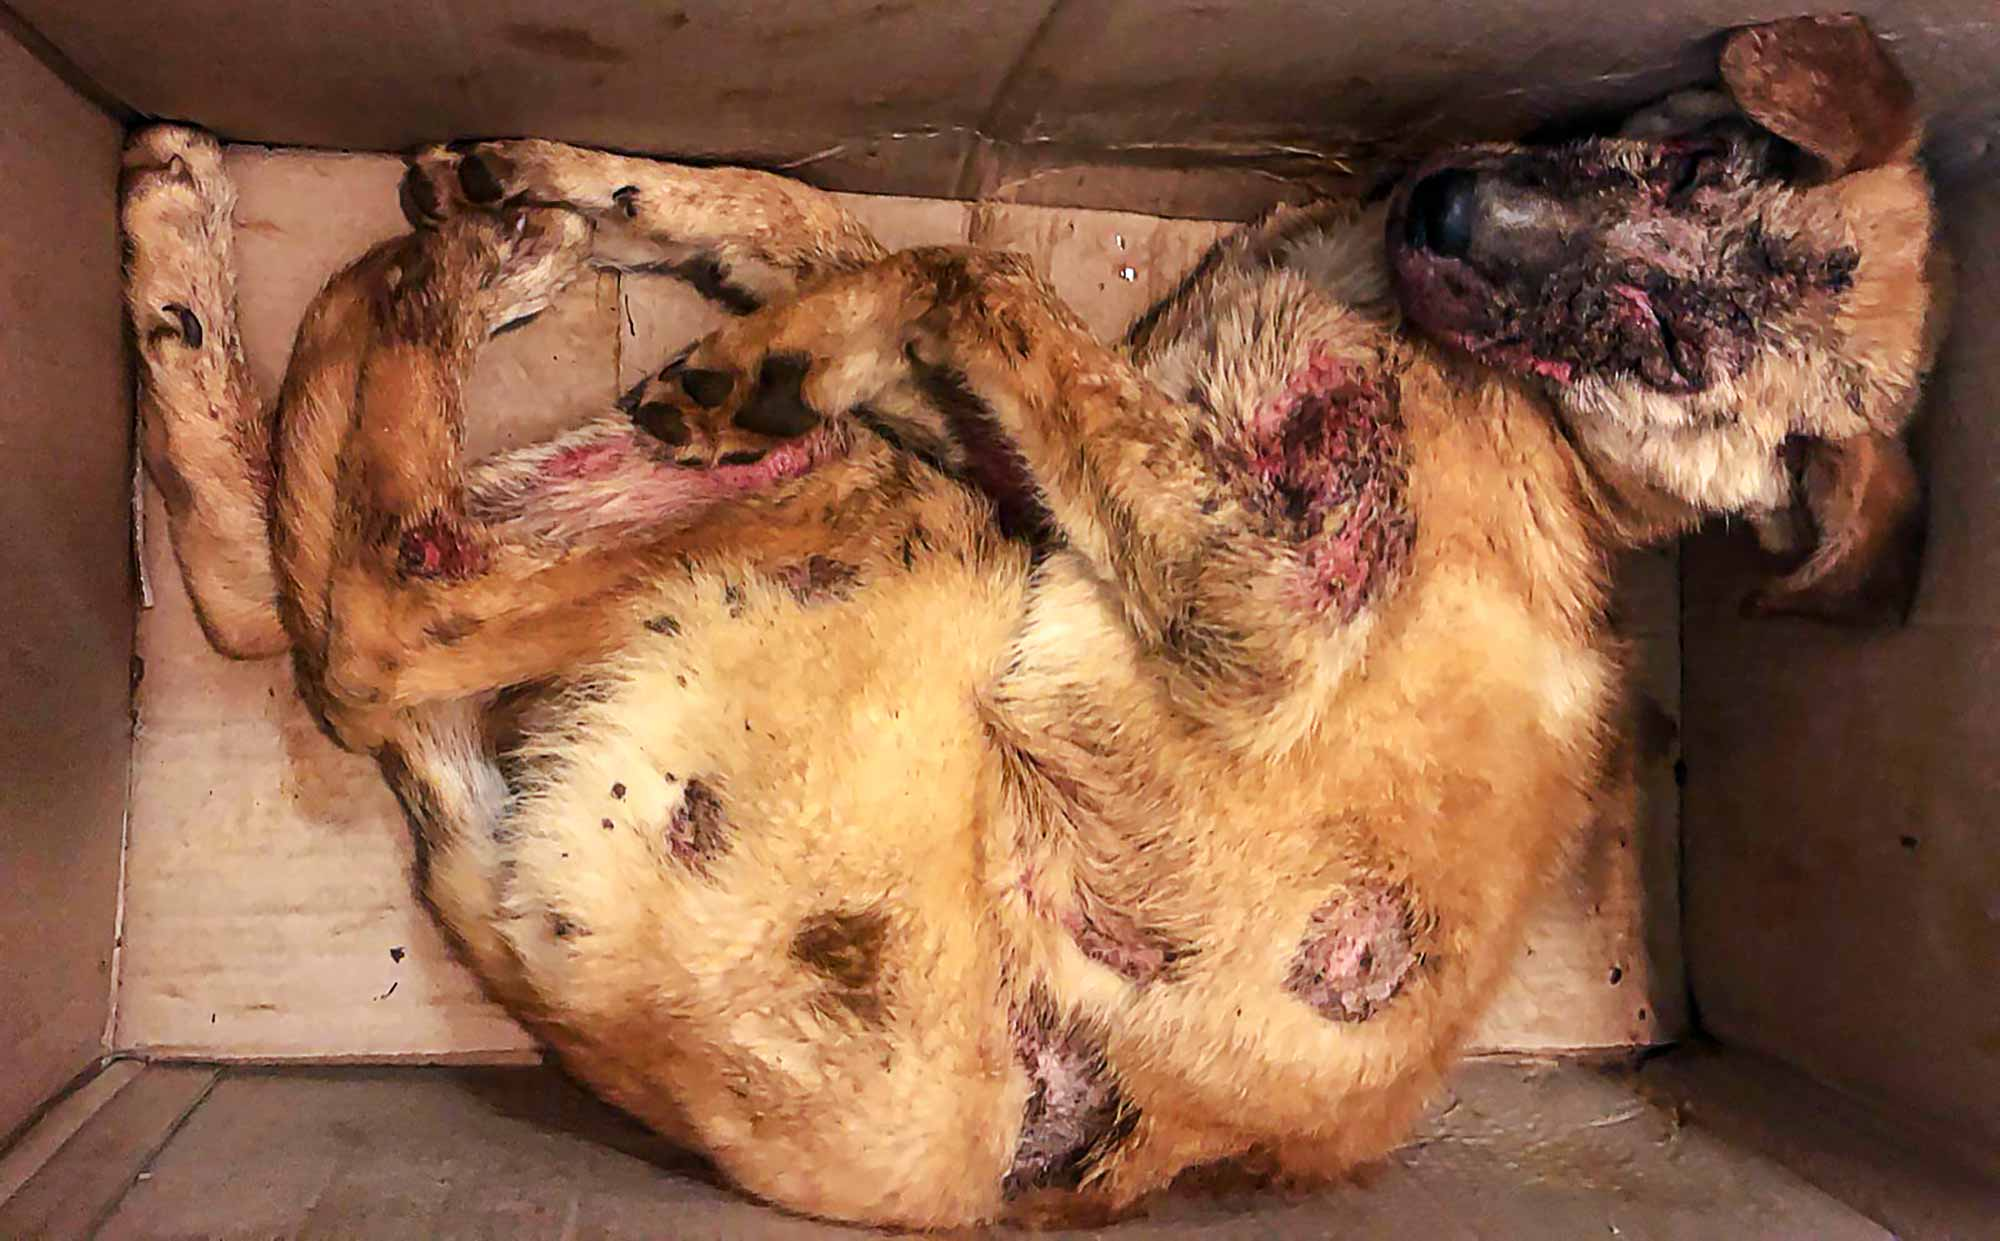 Bethlehem's street dogs are being shot, poisoned and burned with acid! 3